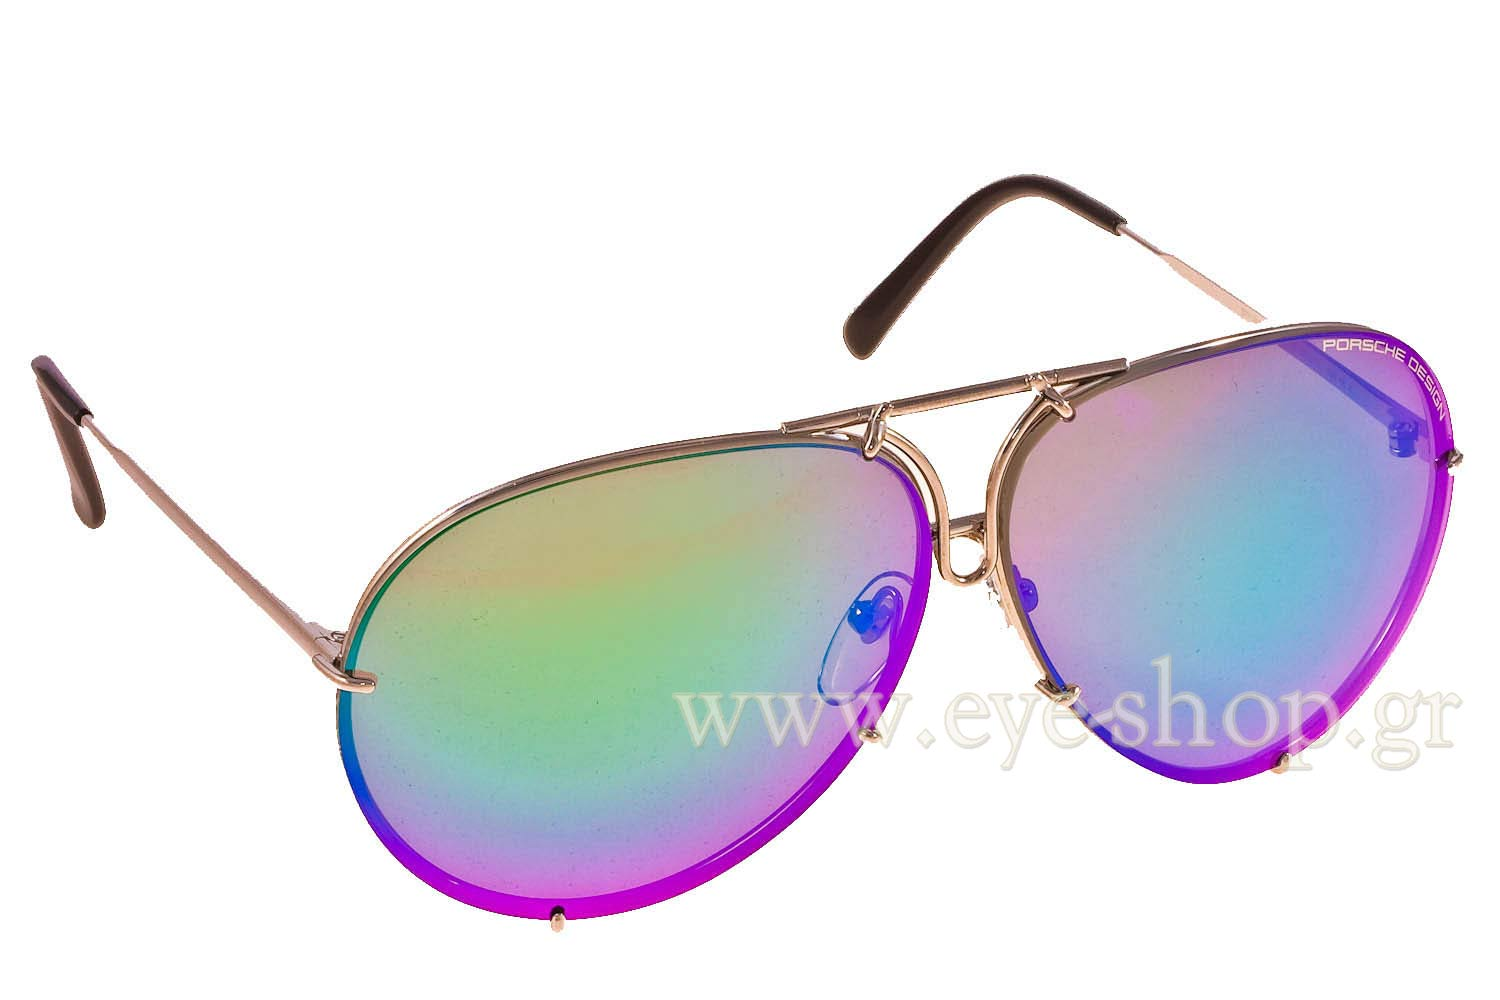 Porsche Design P8478 B With 2 Pairs 69 Sunglasses Unisex